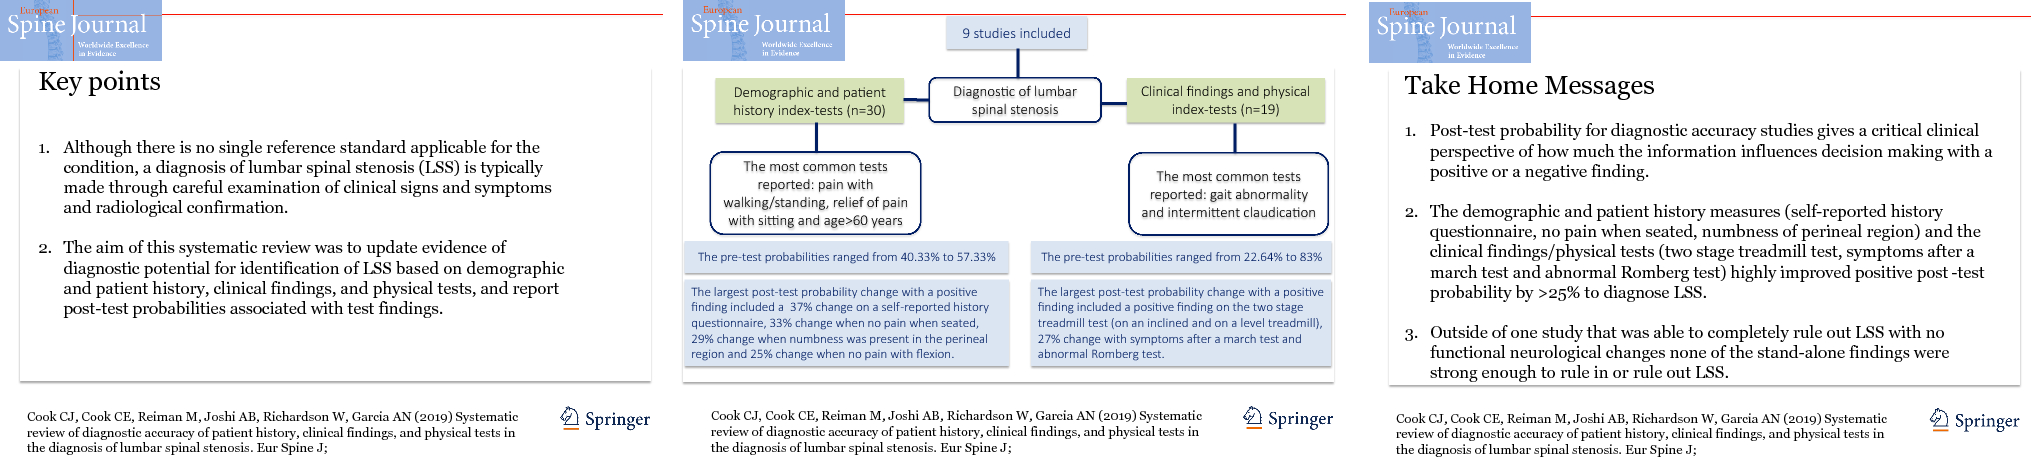 Systematic review of diagnostic accuracy of patient history